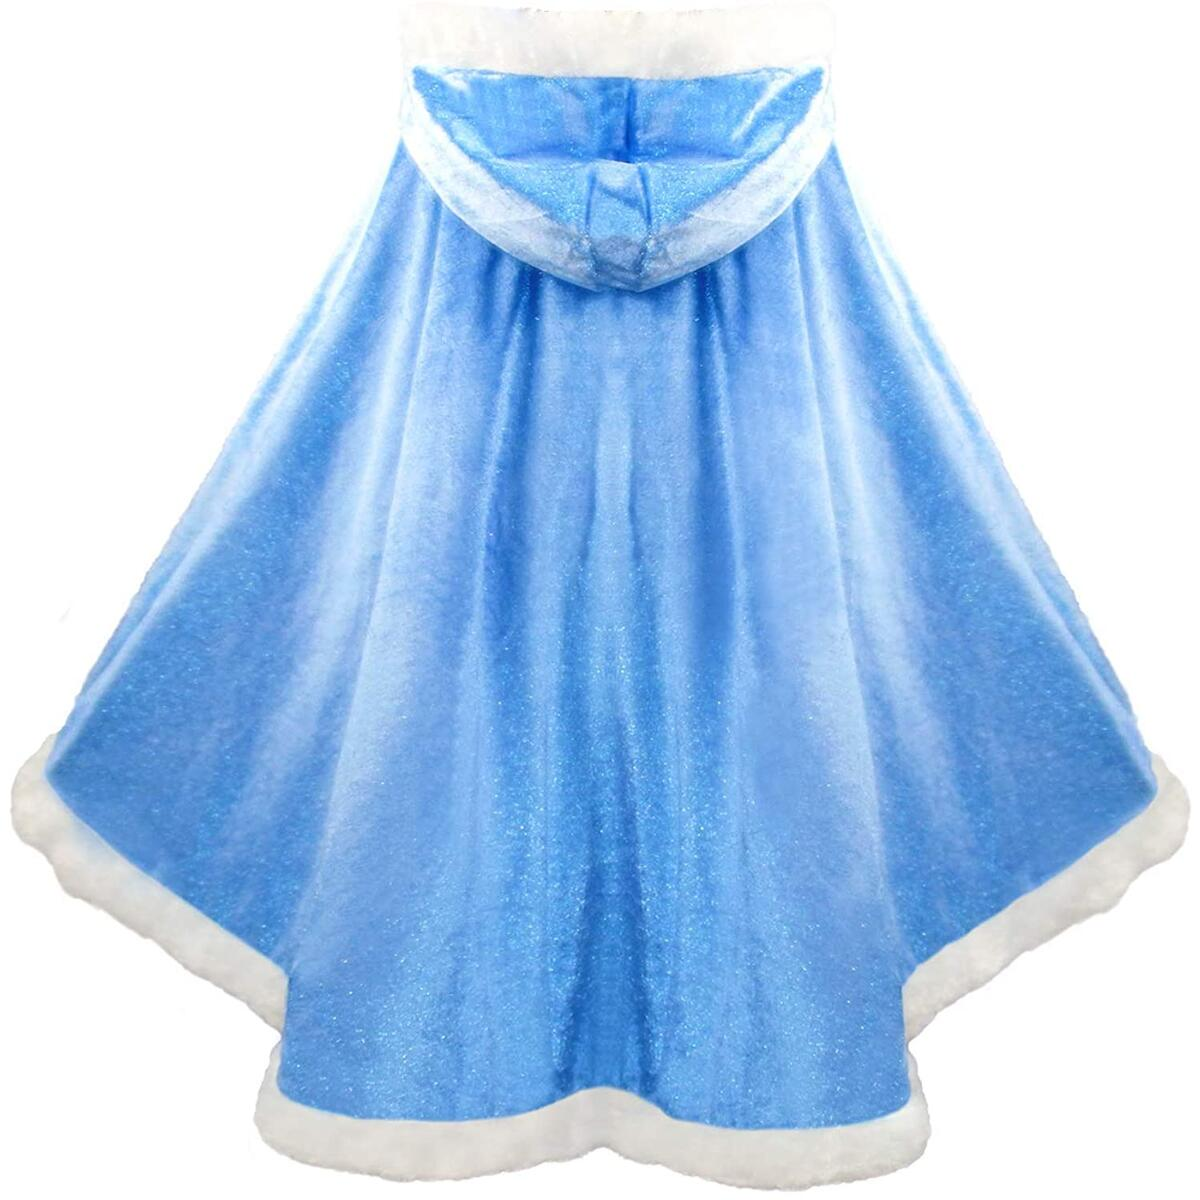 Almce Fur Princess Hooded Cape Cloaks Costume - Birthday Halloween Cosplay for 2-10 Years Girls Dress Up  (Blue, 4-5 Years)